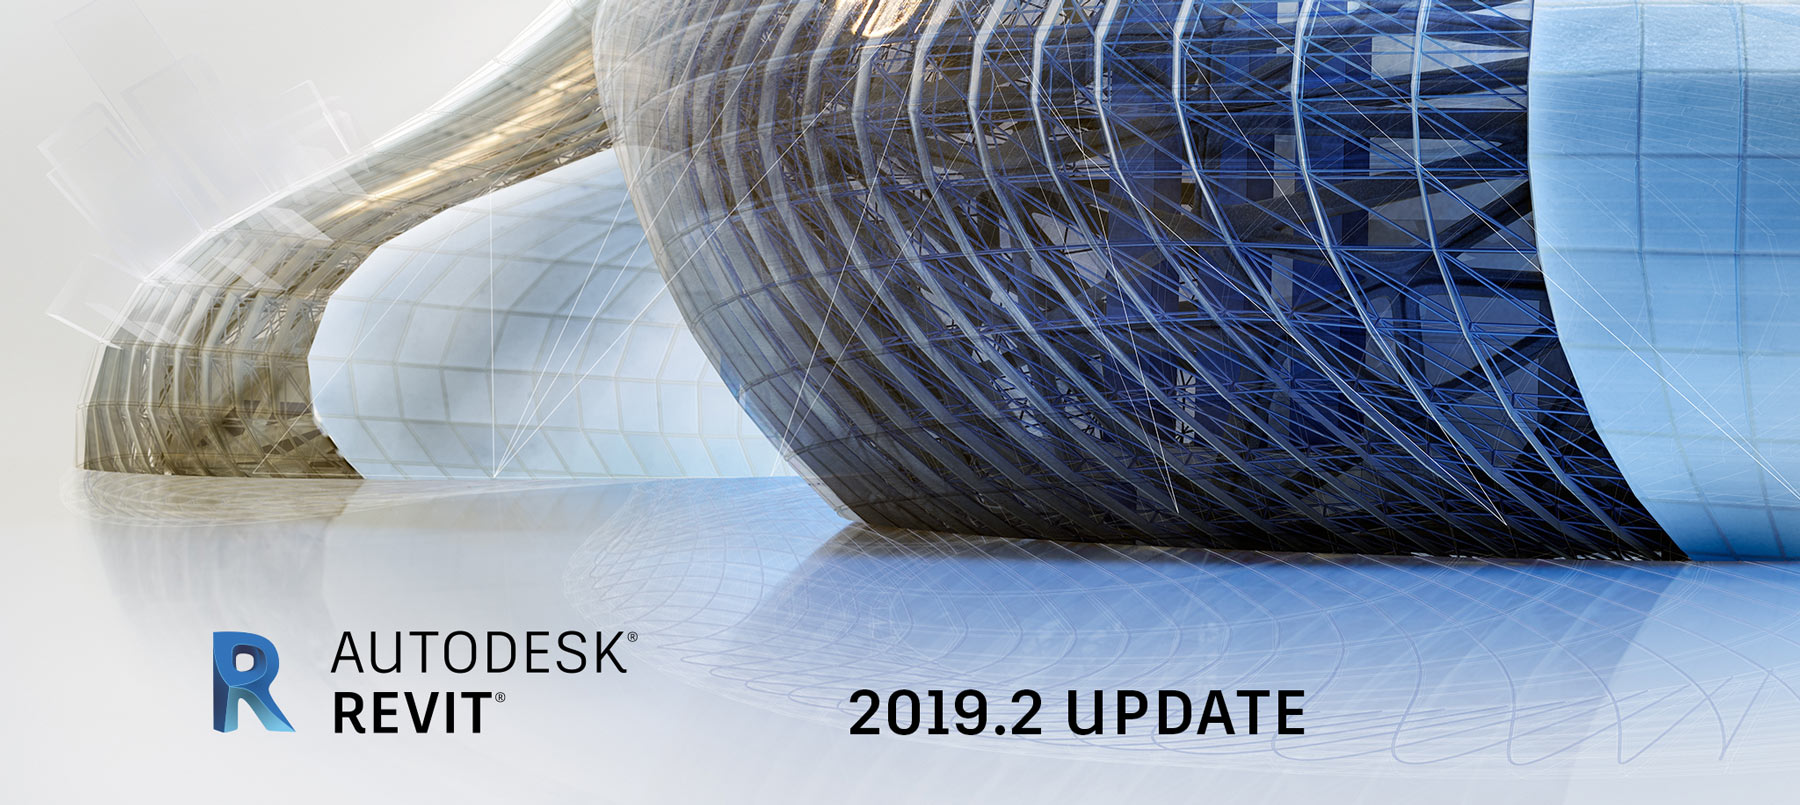 Autodesk Revit 2019.2 Update